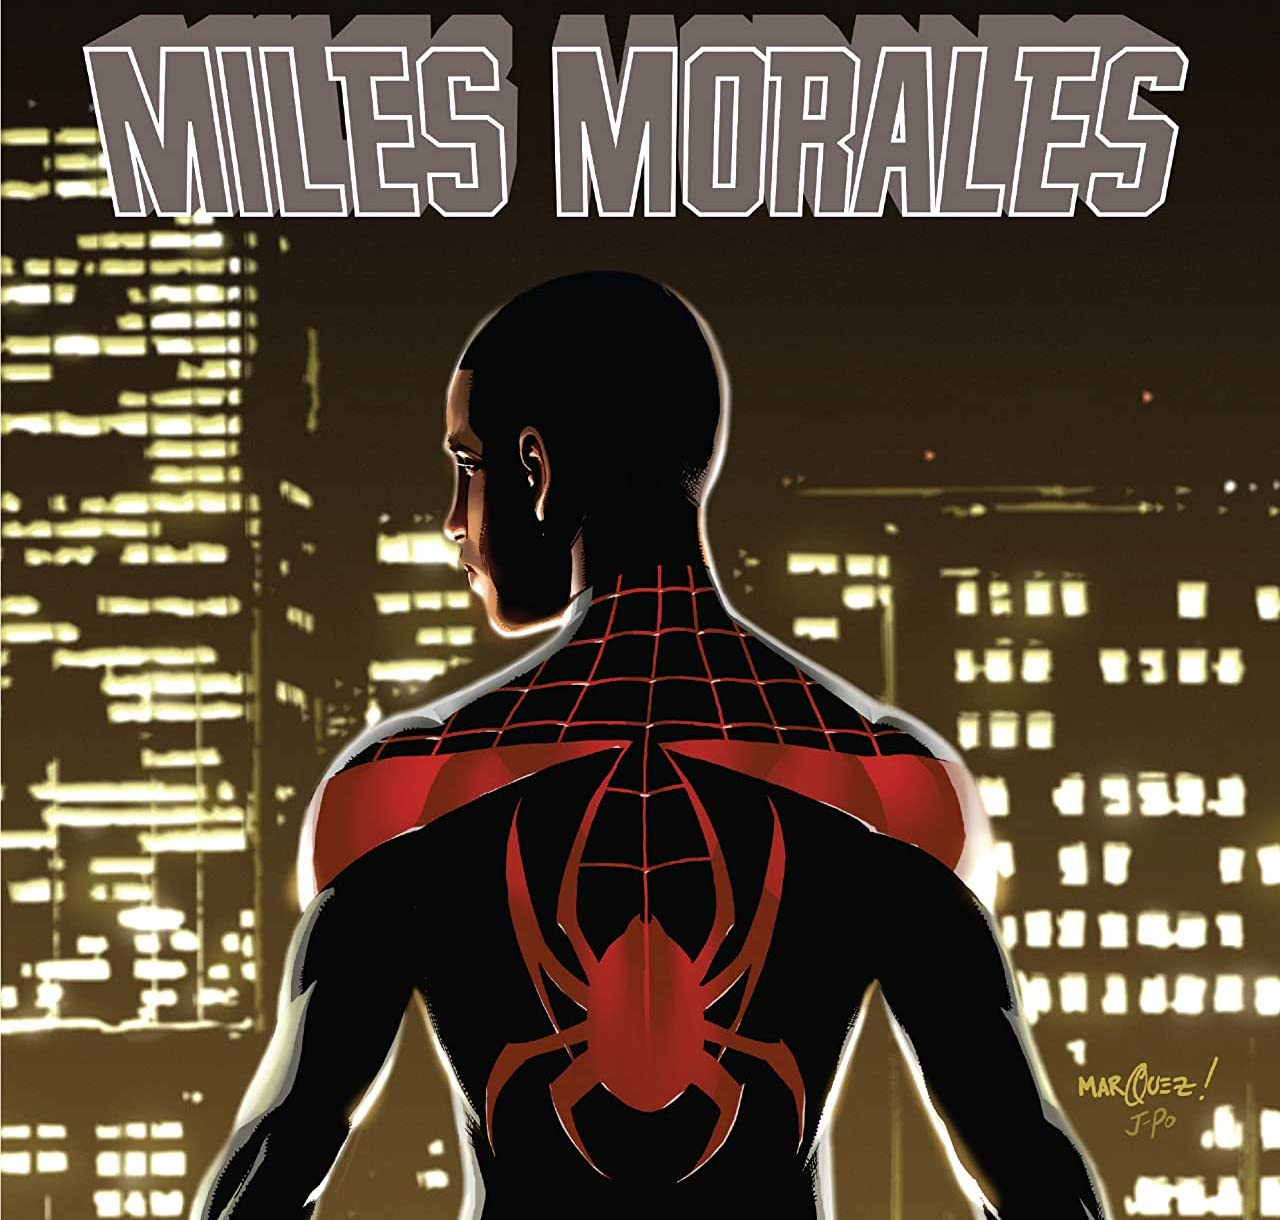 'Miles Morales: Ultimate End' proves Miles is an incredible superhero